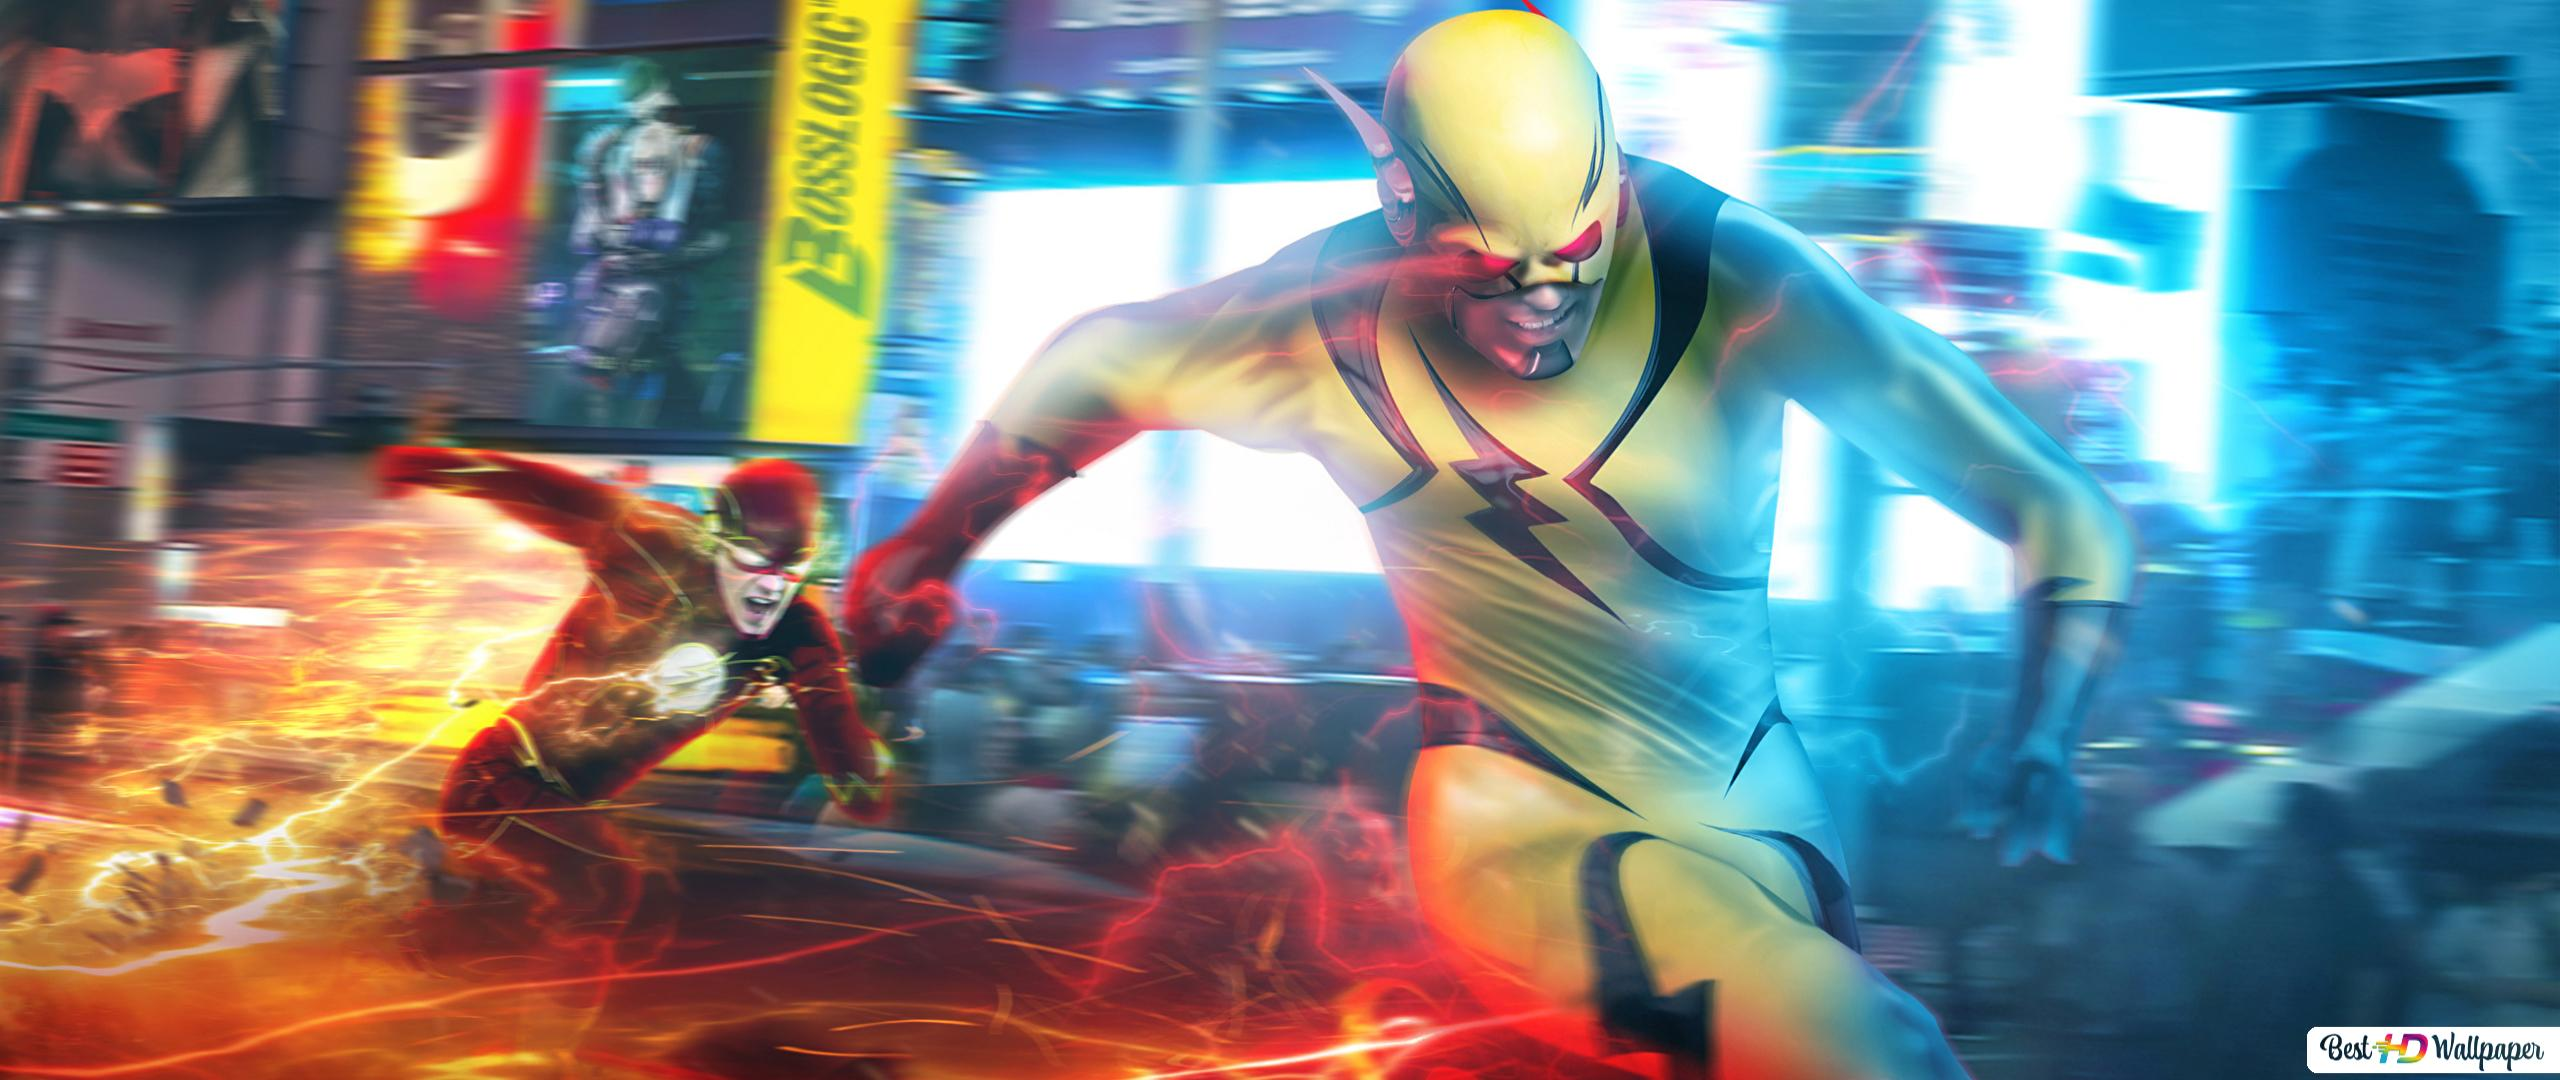 The Flash Series Flash Vs Reverse Flash Hd Wallpaper Download